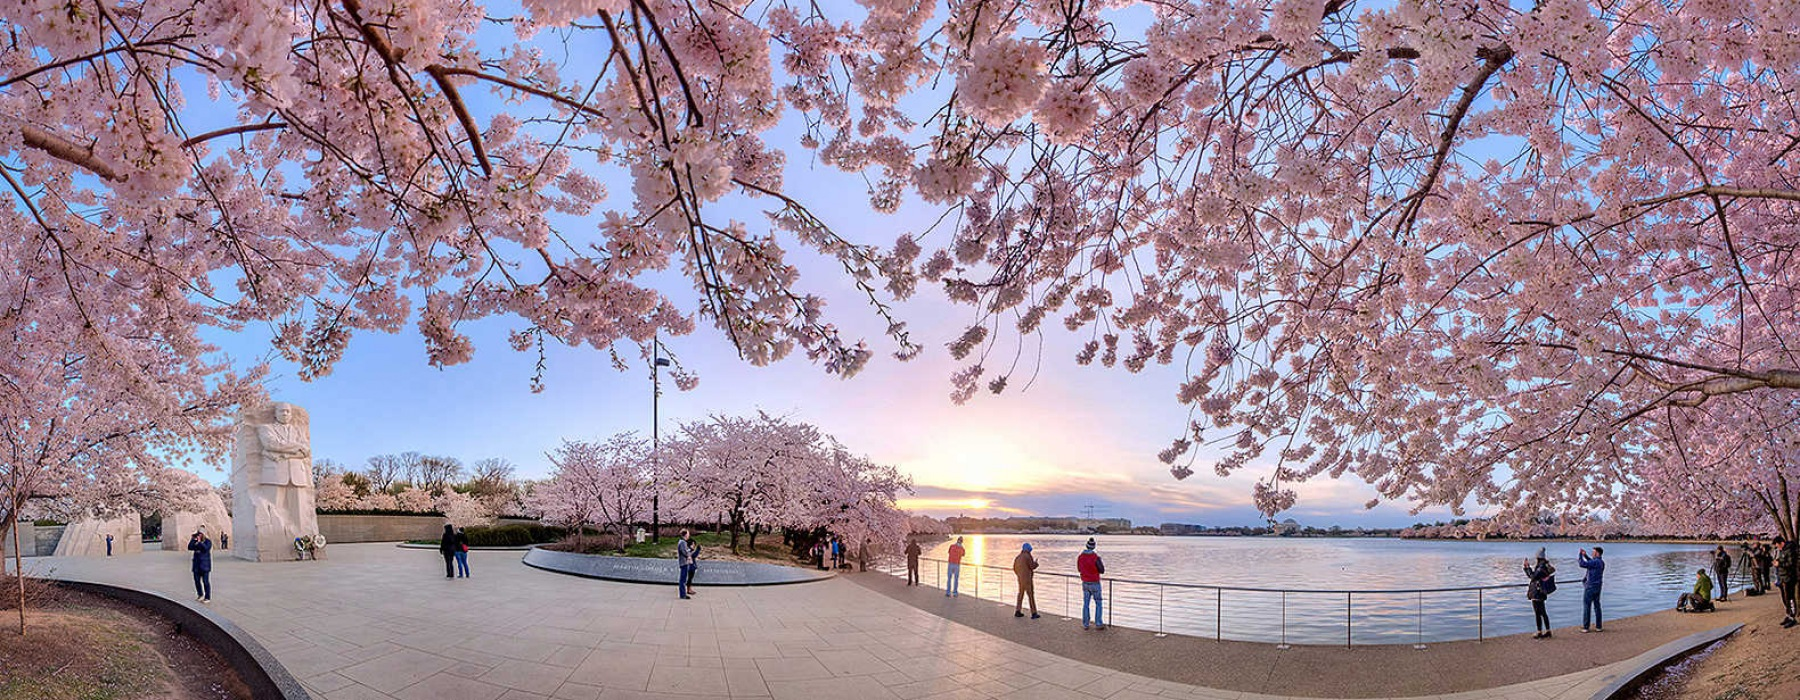 park with cherry blossoms